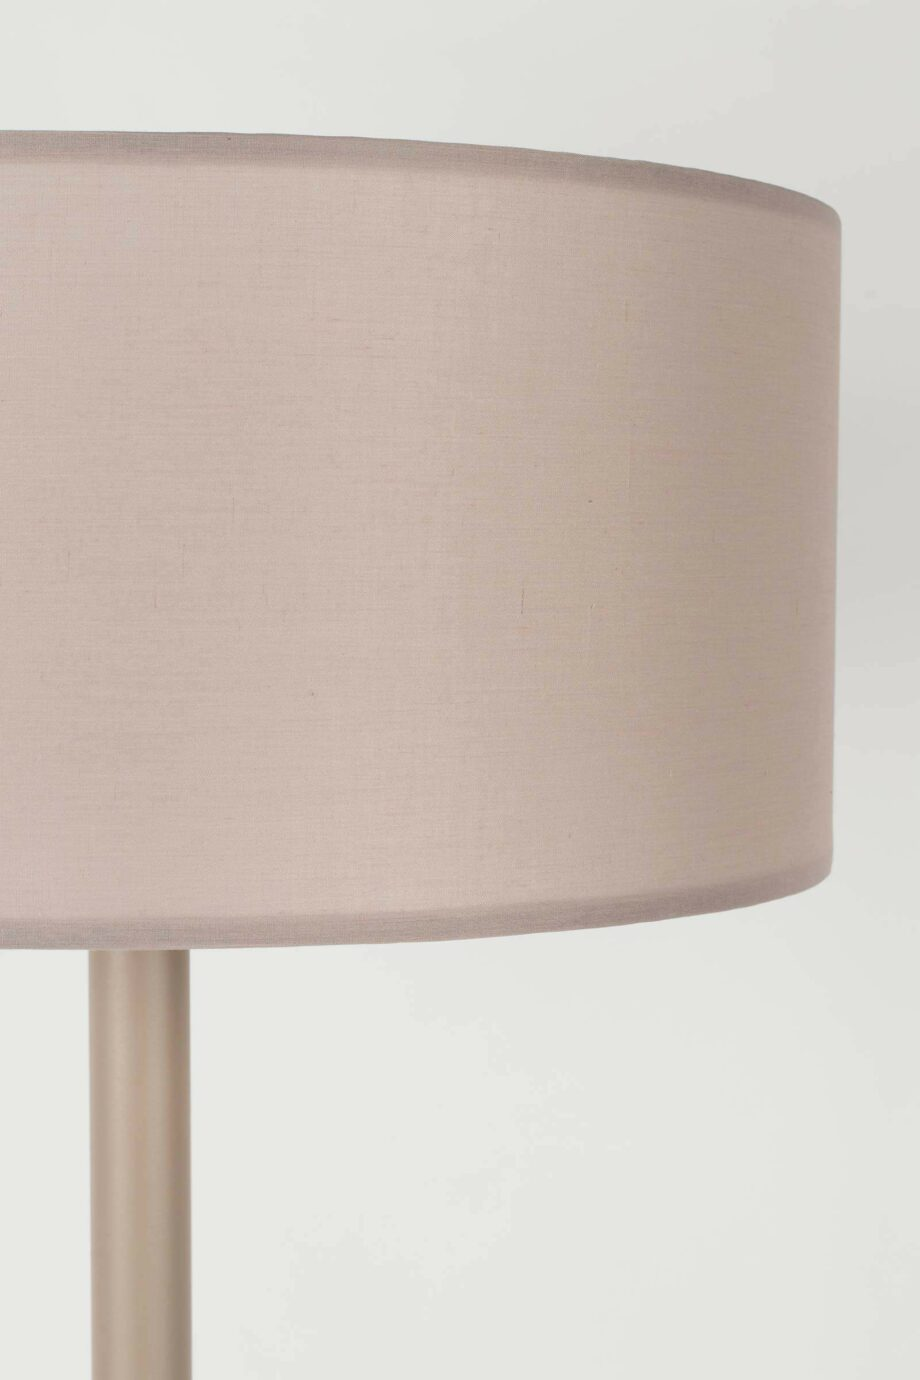 Shelby vloerlamp Zuiver taupe 3